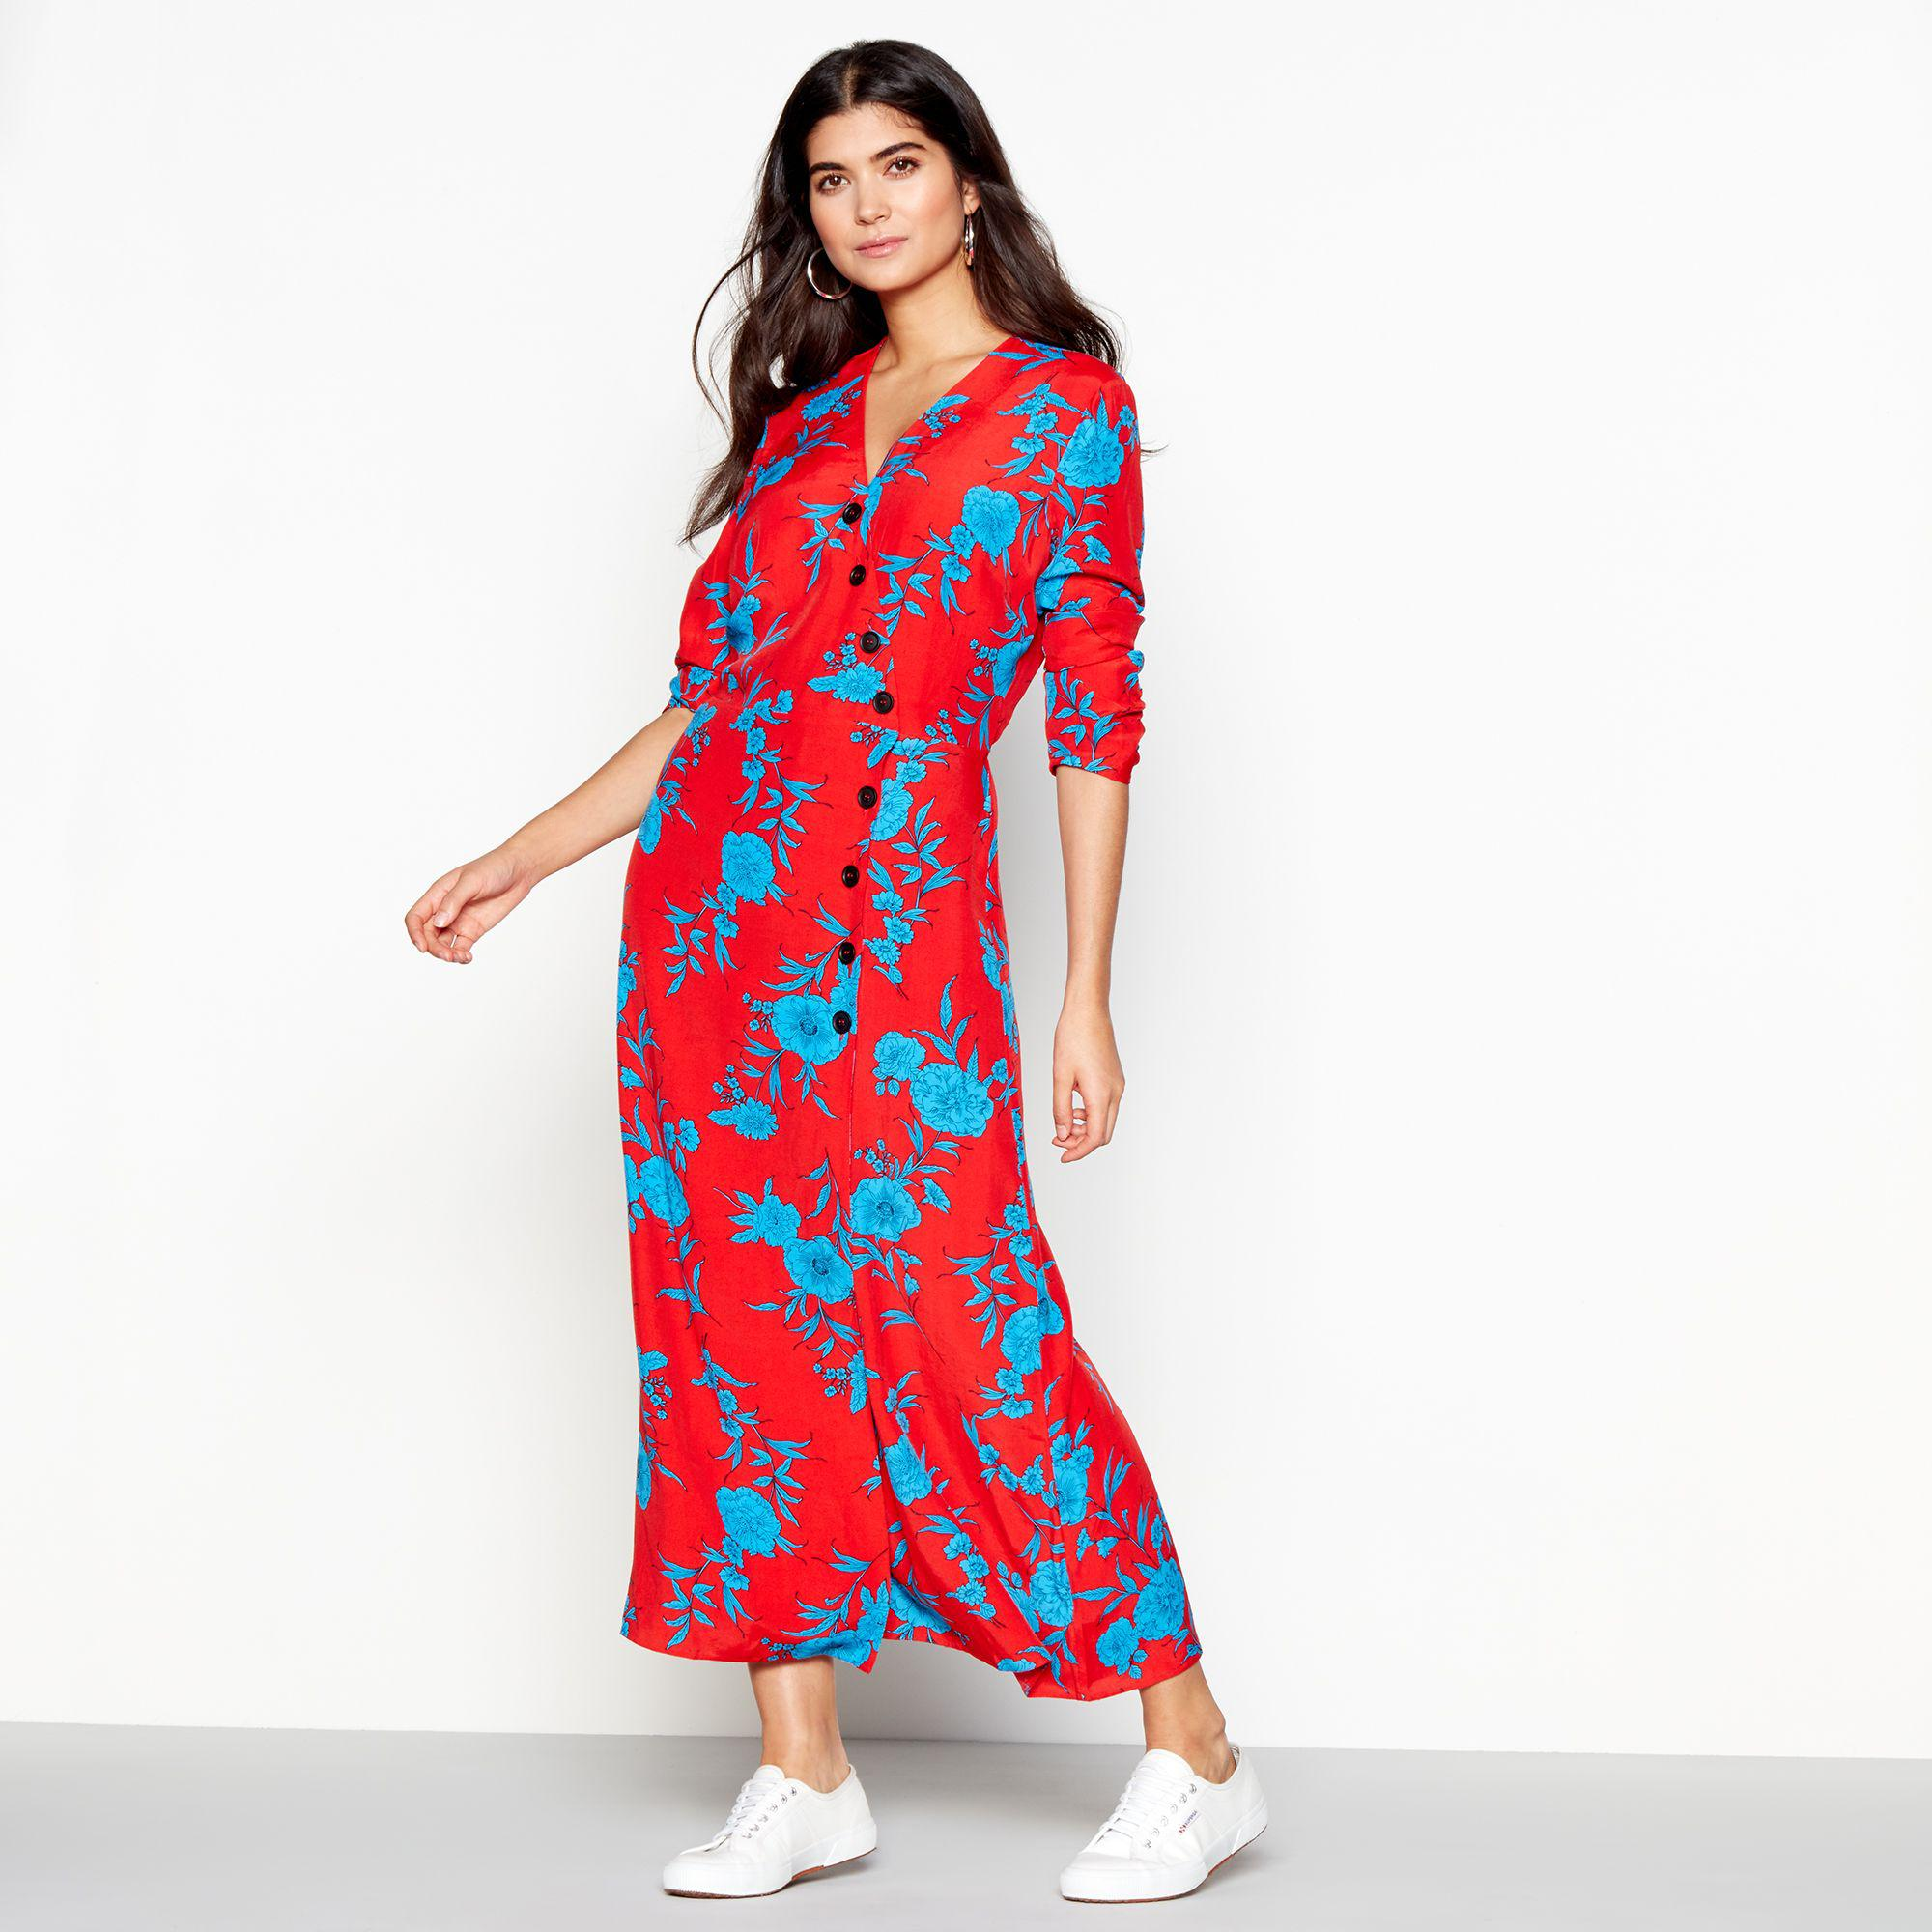 8d8da96471e Red Herring Red Floral Print  cordelia  Long Sleeve Maxi Dress in ...